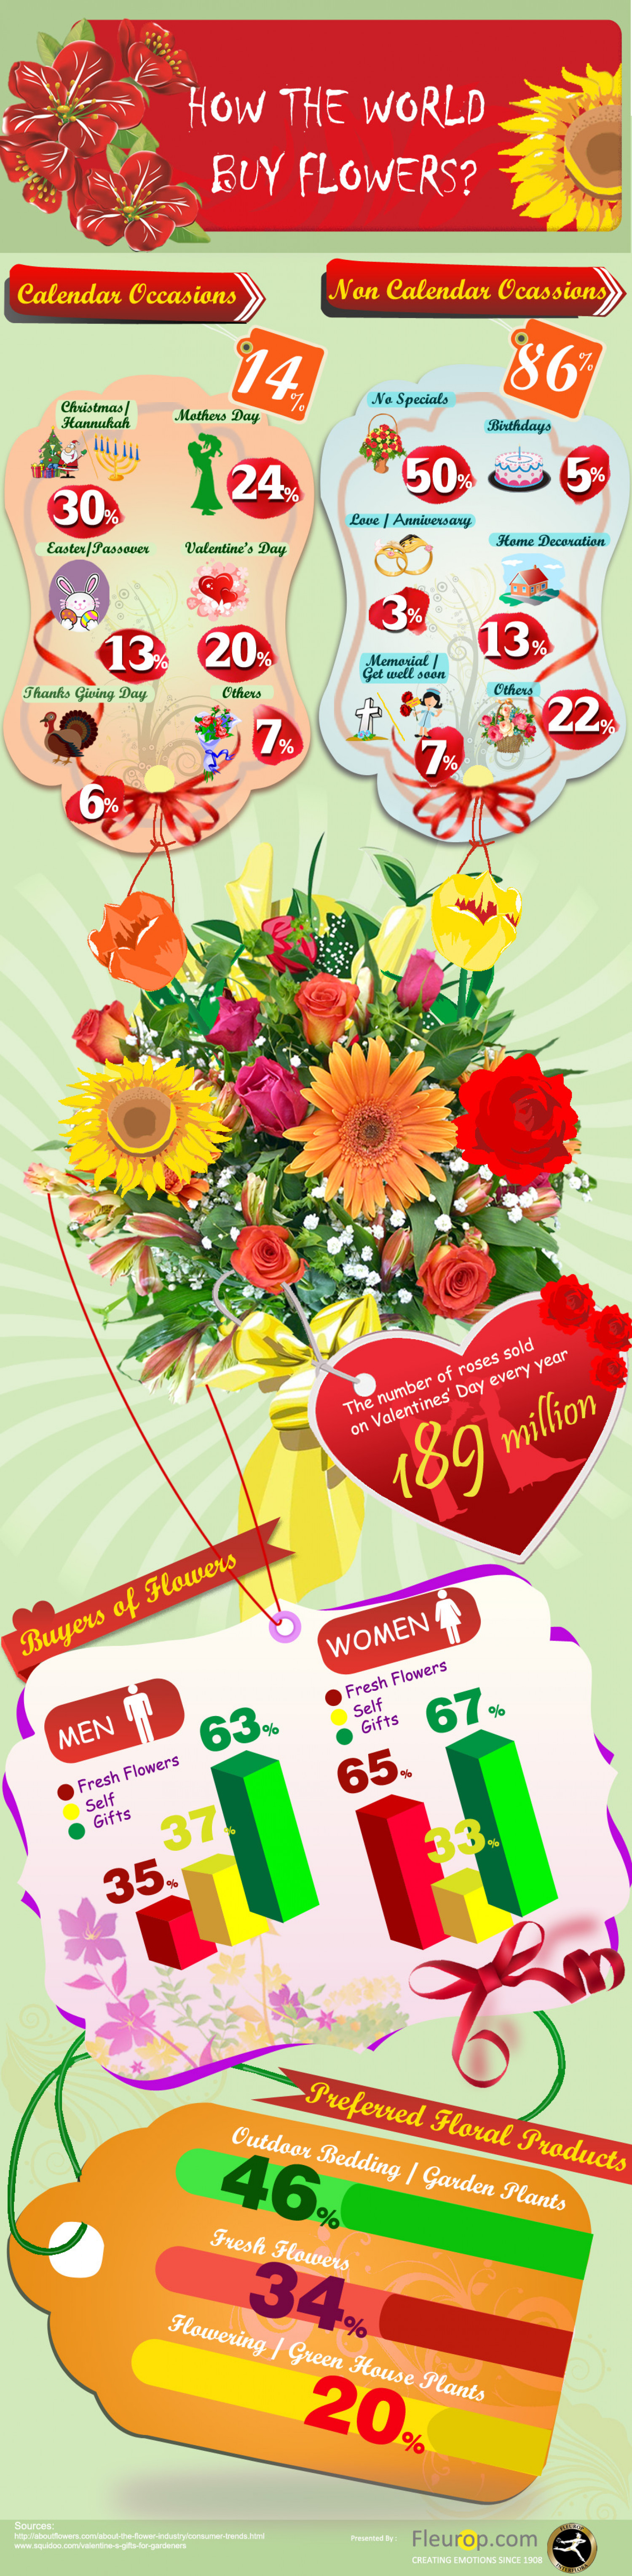 How the world buy flowers? Infographic